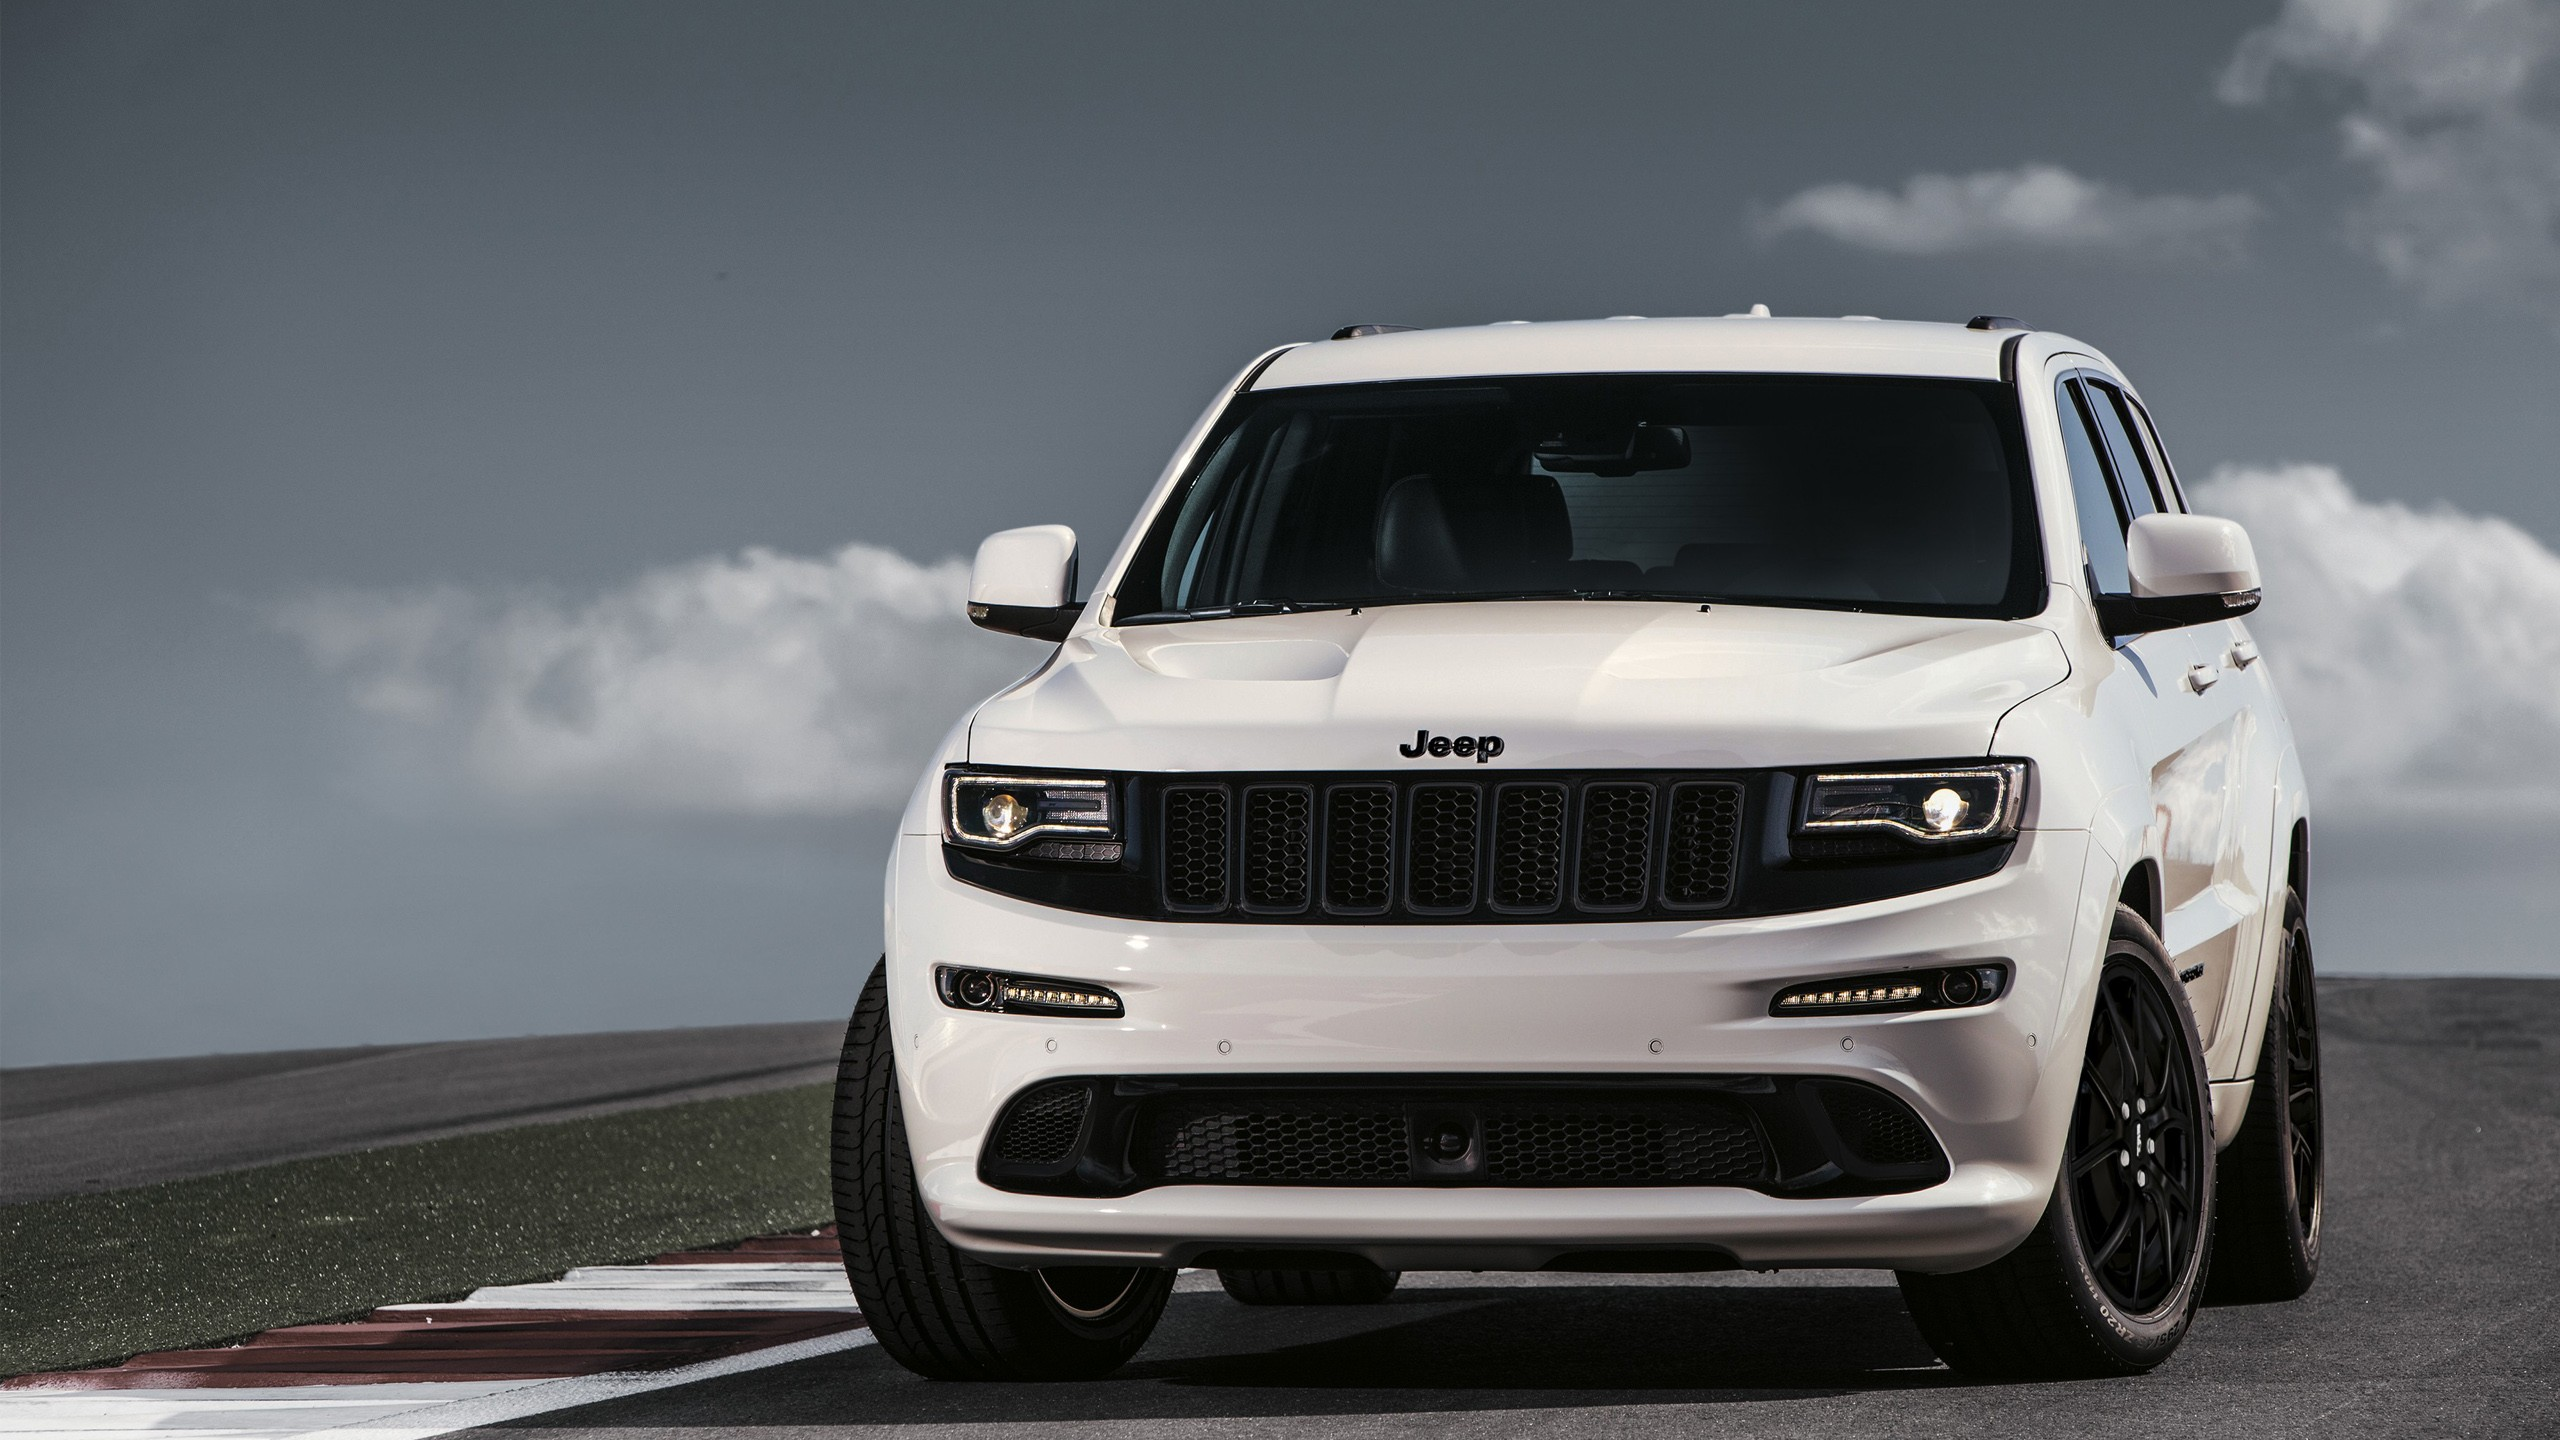 2017 Jeep Grand Cherokee SRT Wallpaper | HD Car Wallpapers